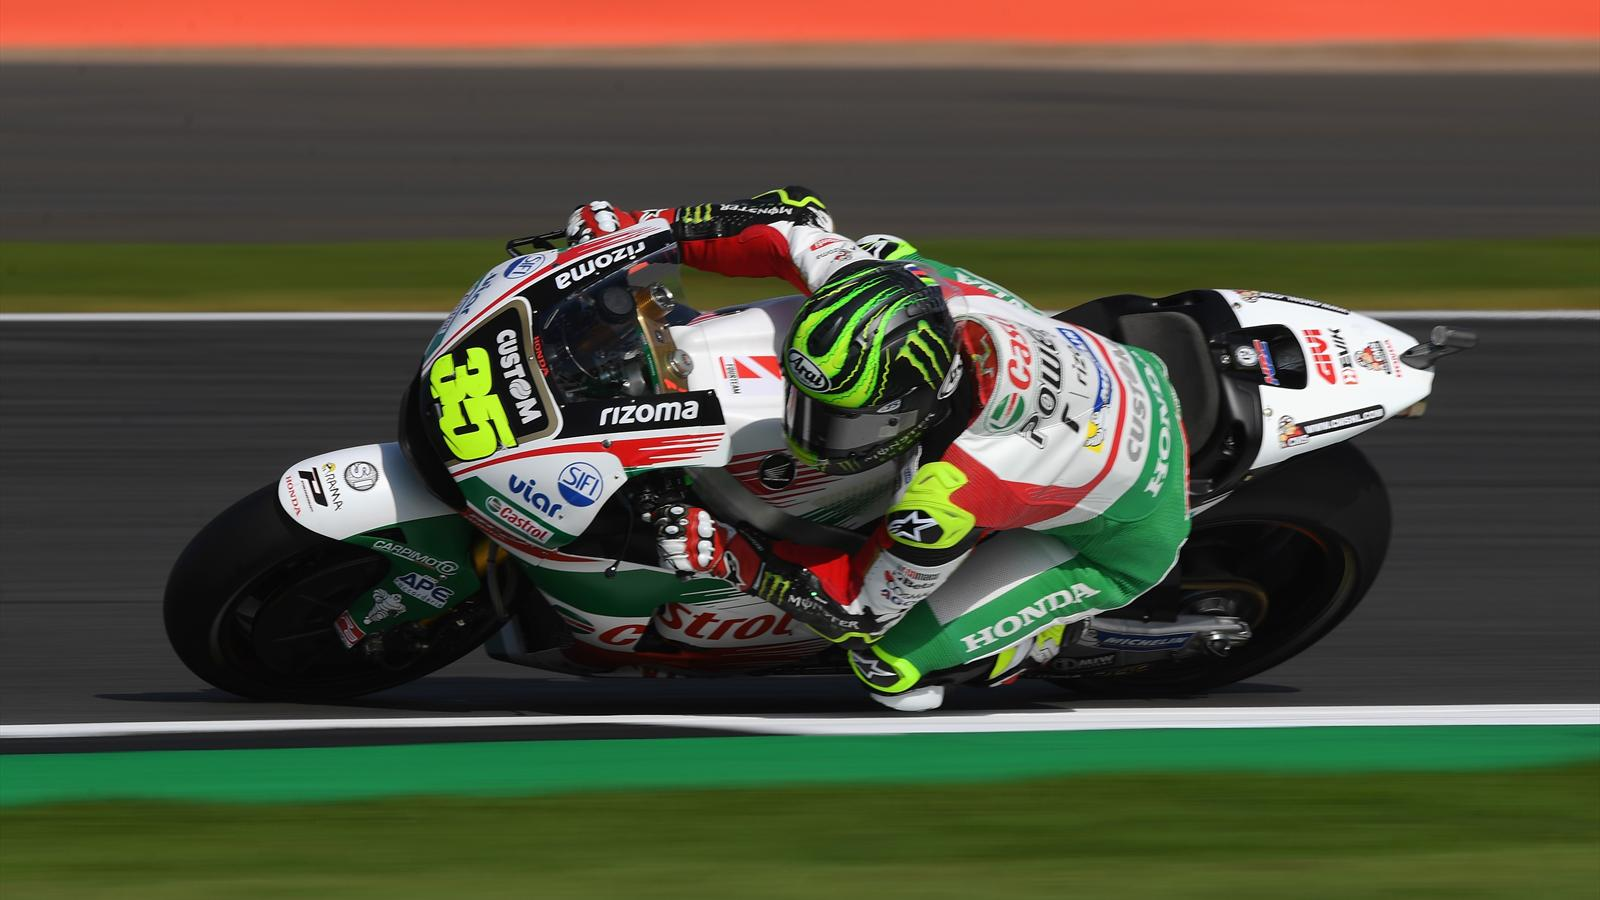 motogp cal crutchlow honda lcr meilleur temps des essais libres 2 silverstone grand prix. Black Bedroom Furniture Sets. Home Design Ideas